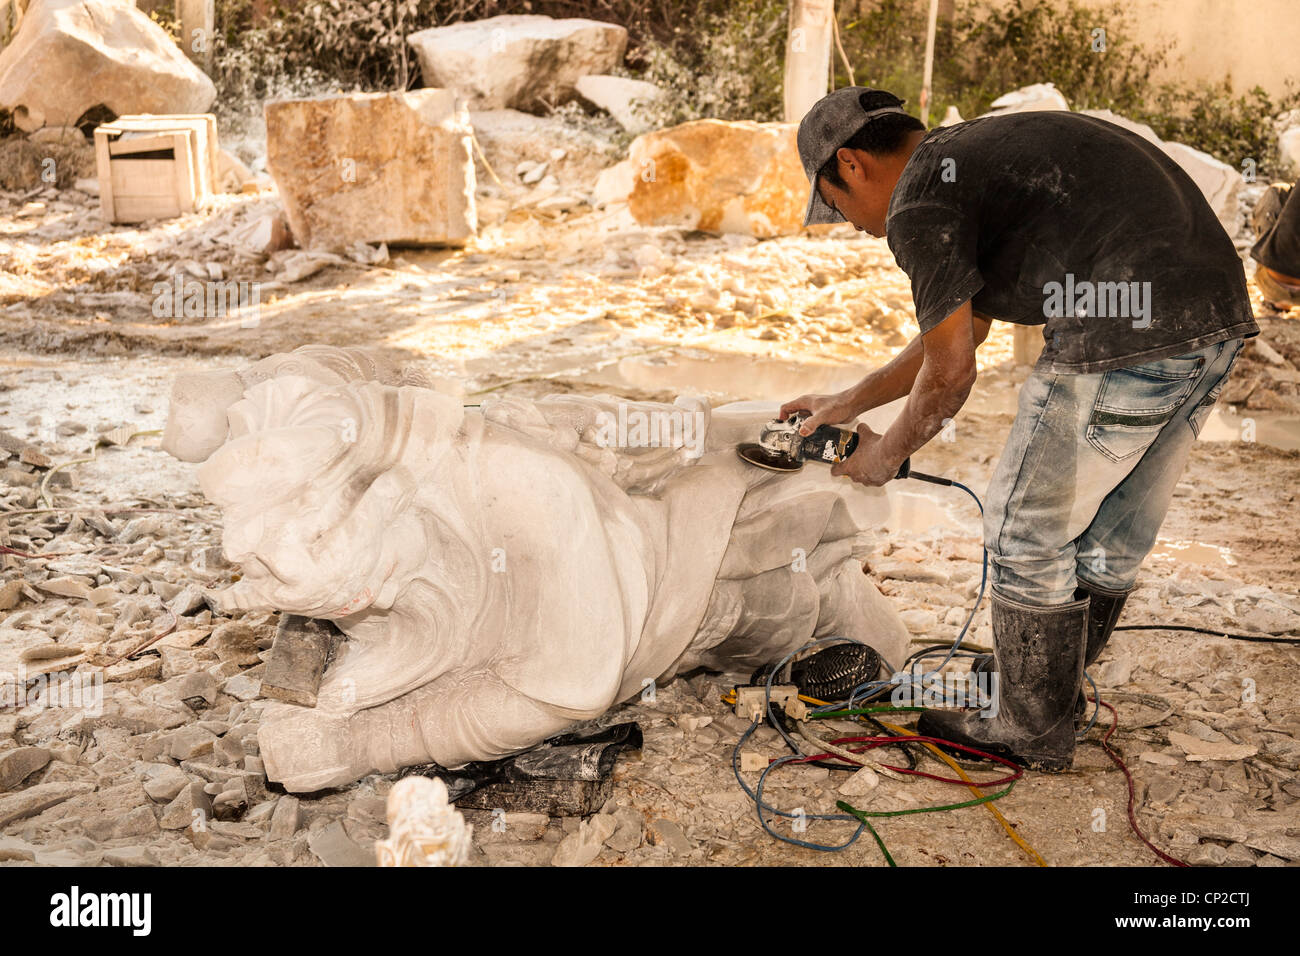 Man using an angle grinder in the manufacture of a stone statue, Tien Hieu factory, Danang, Vietnam - Stock Image